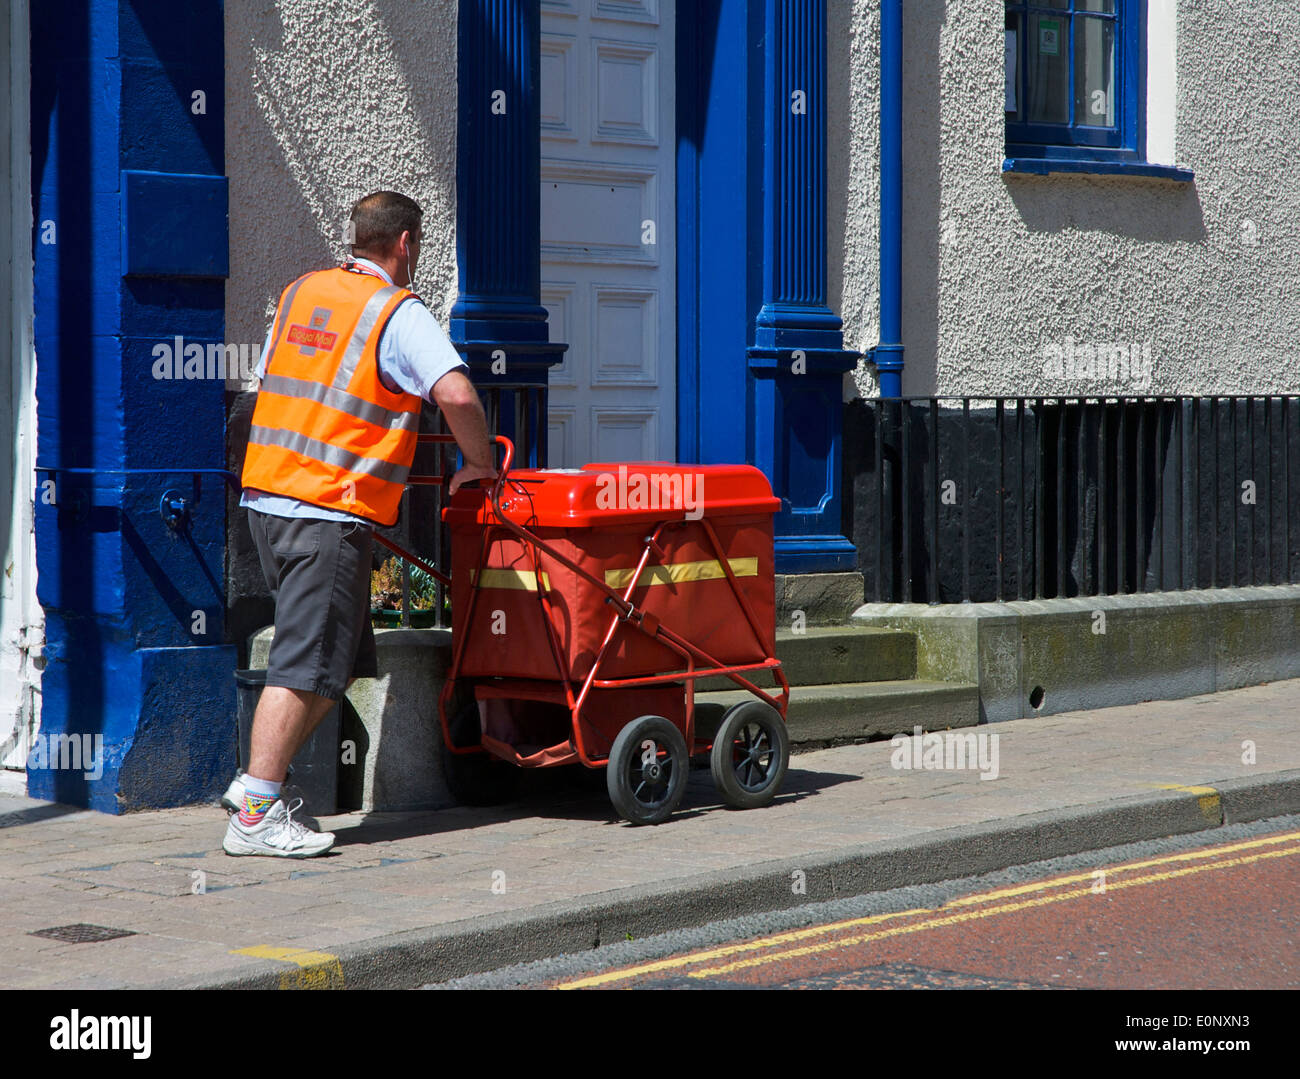 Postman delivering mail - Stock Image